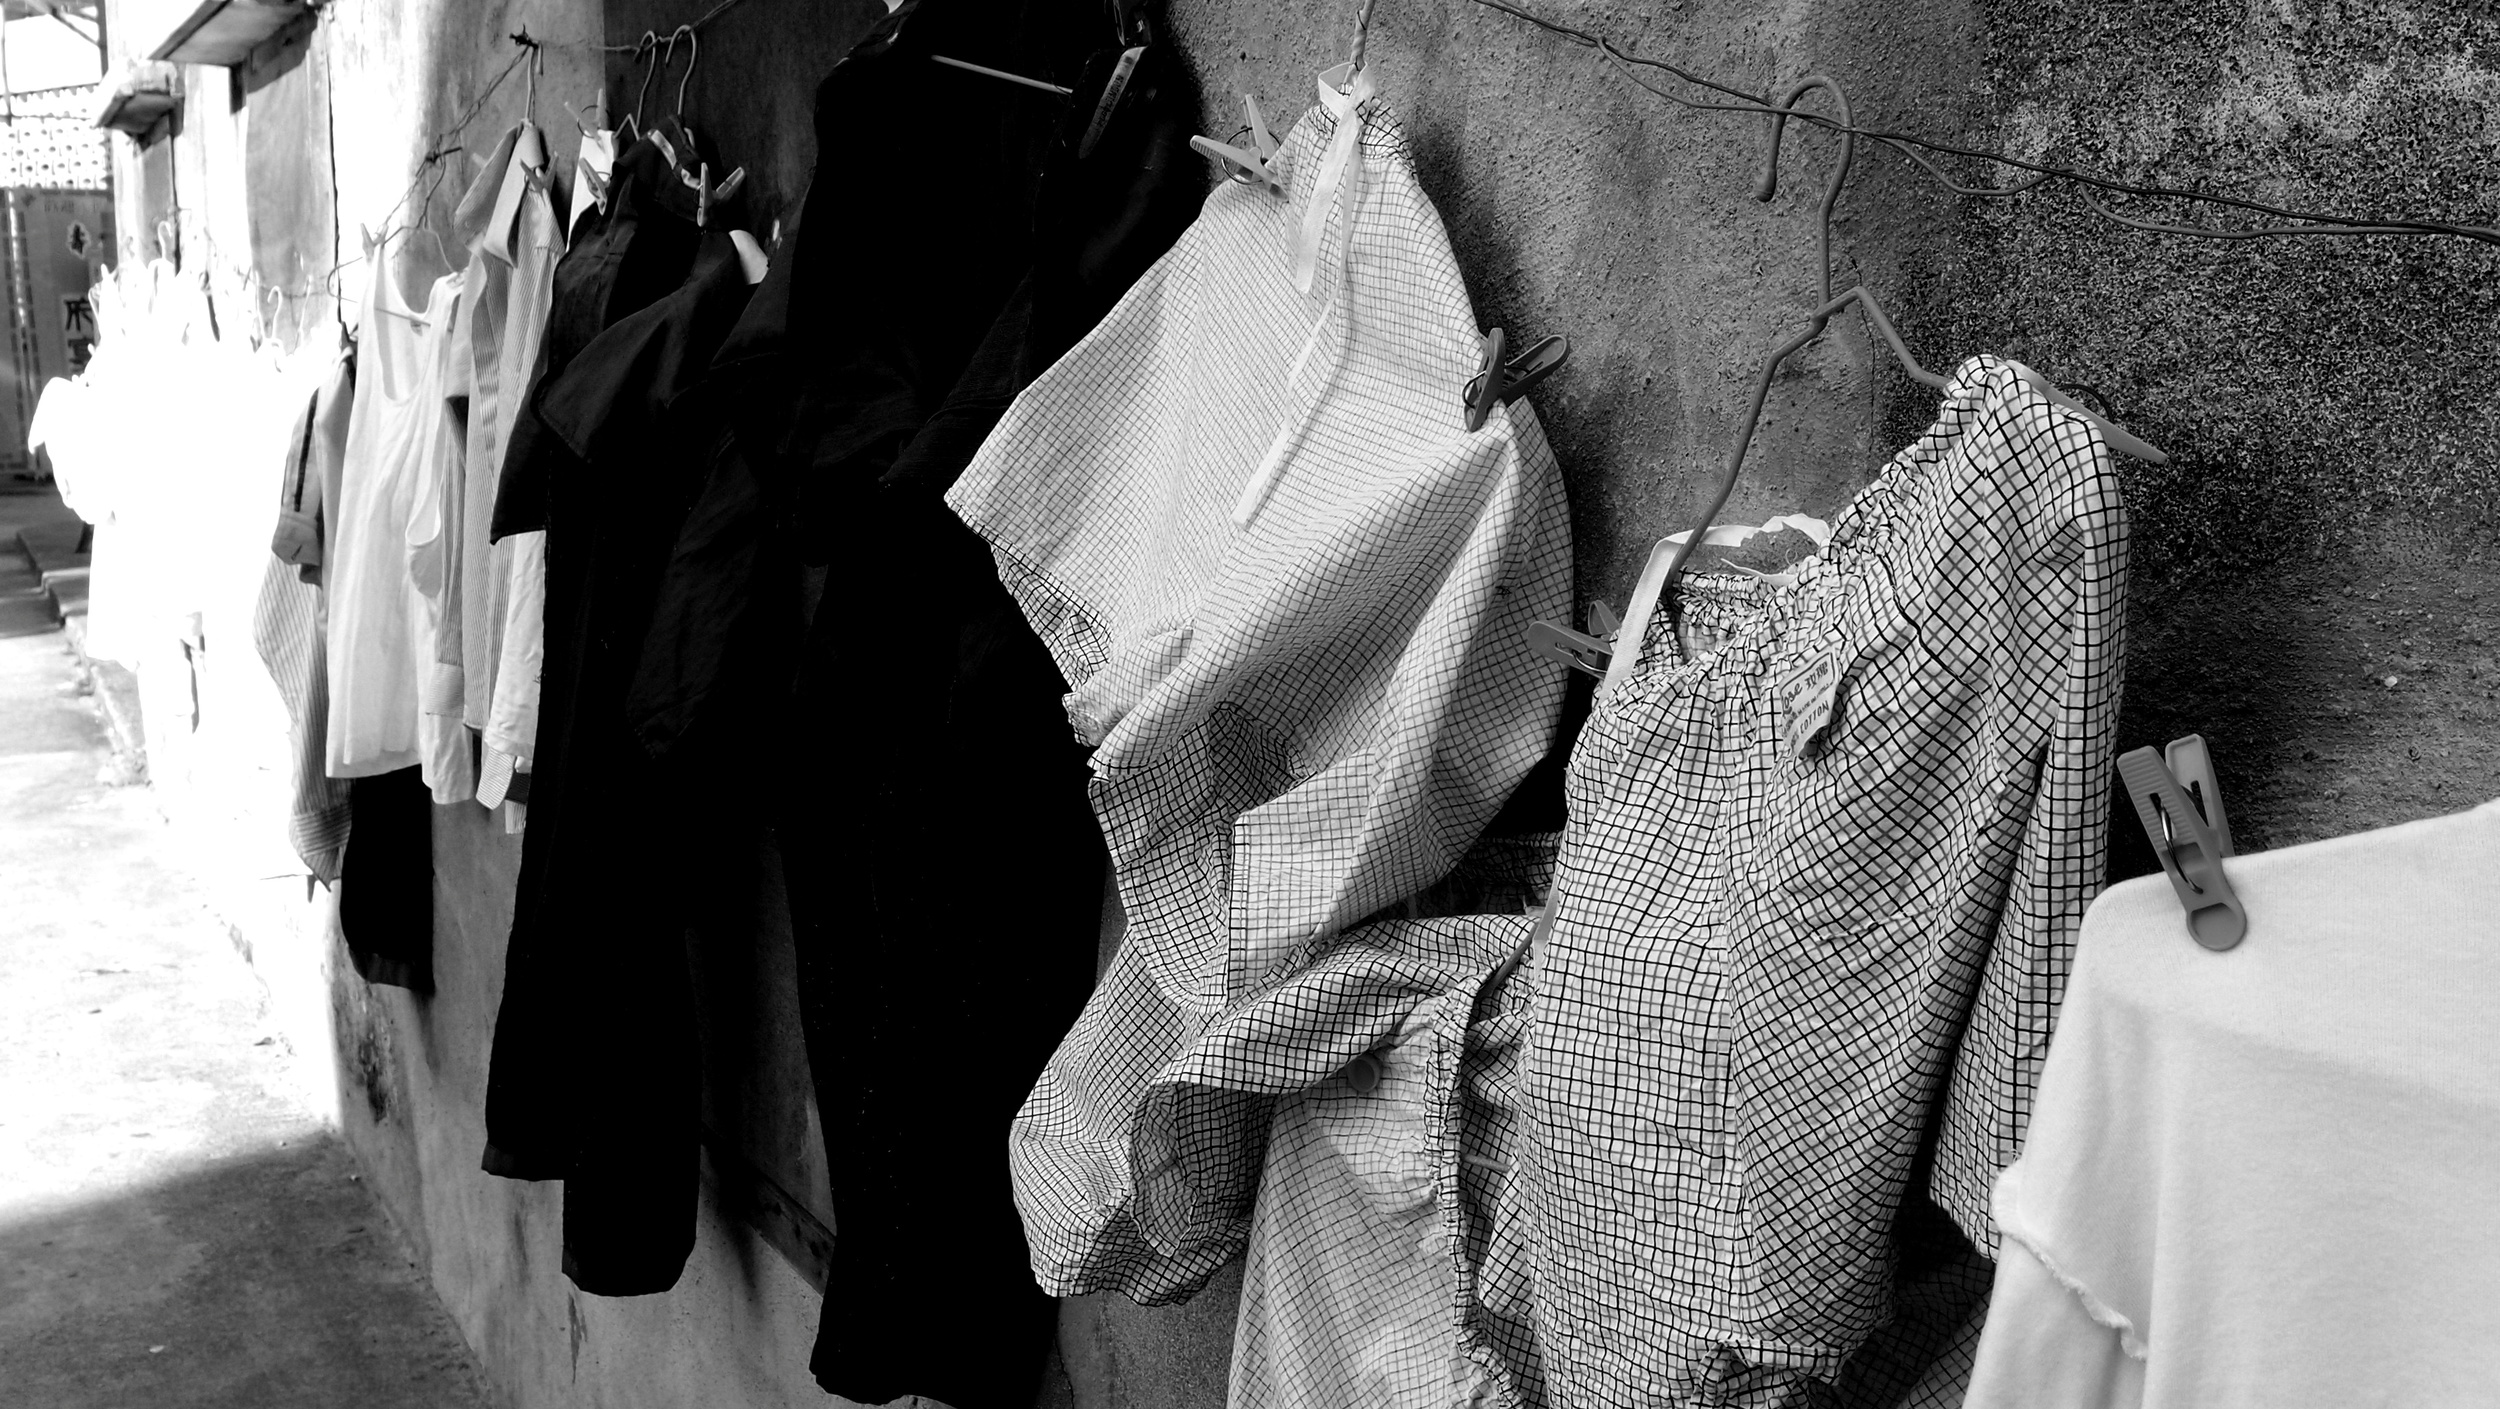 Random washing hanging out to dry